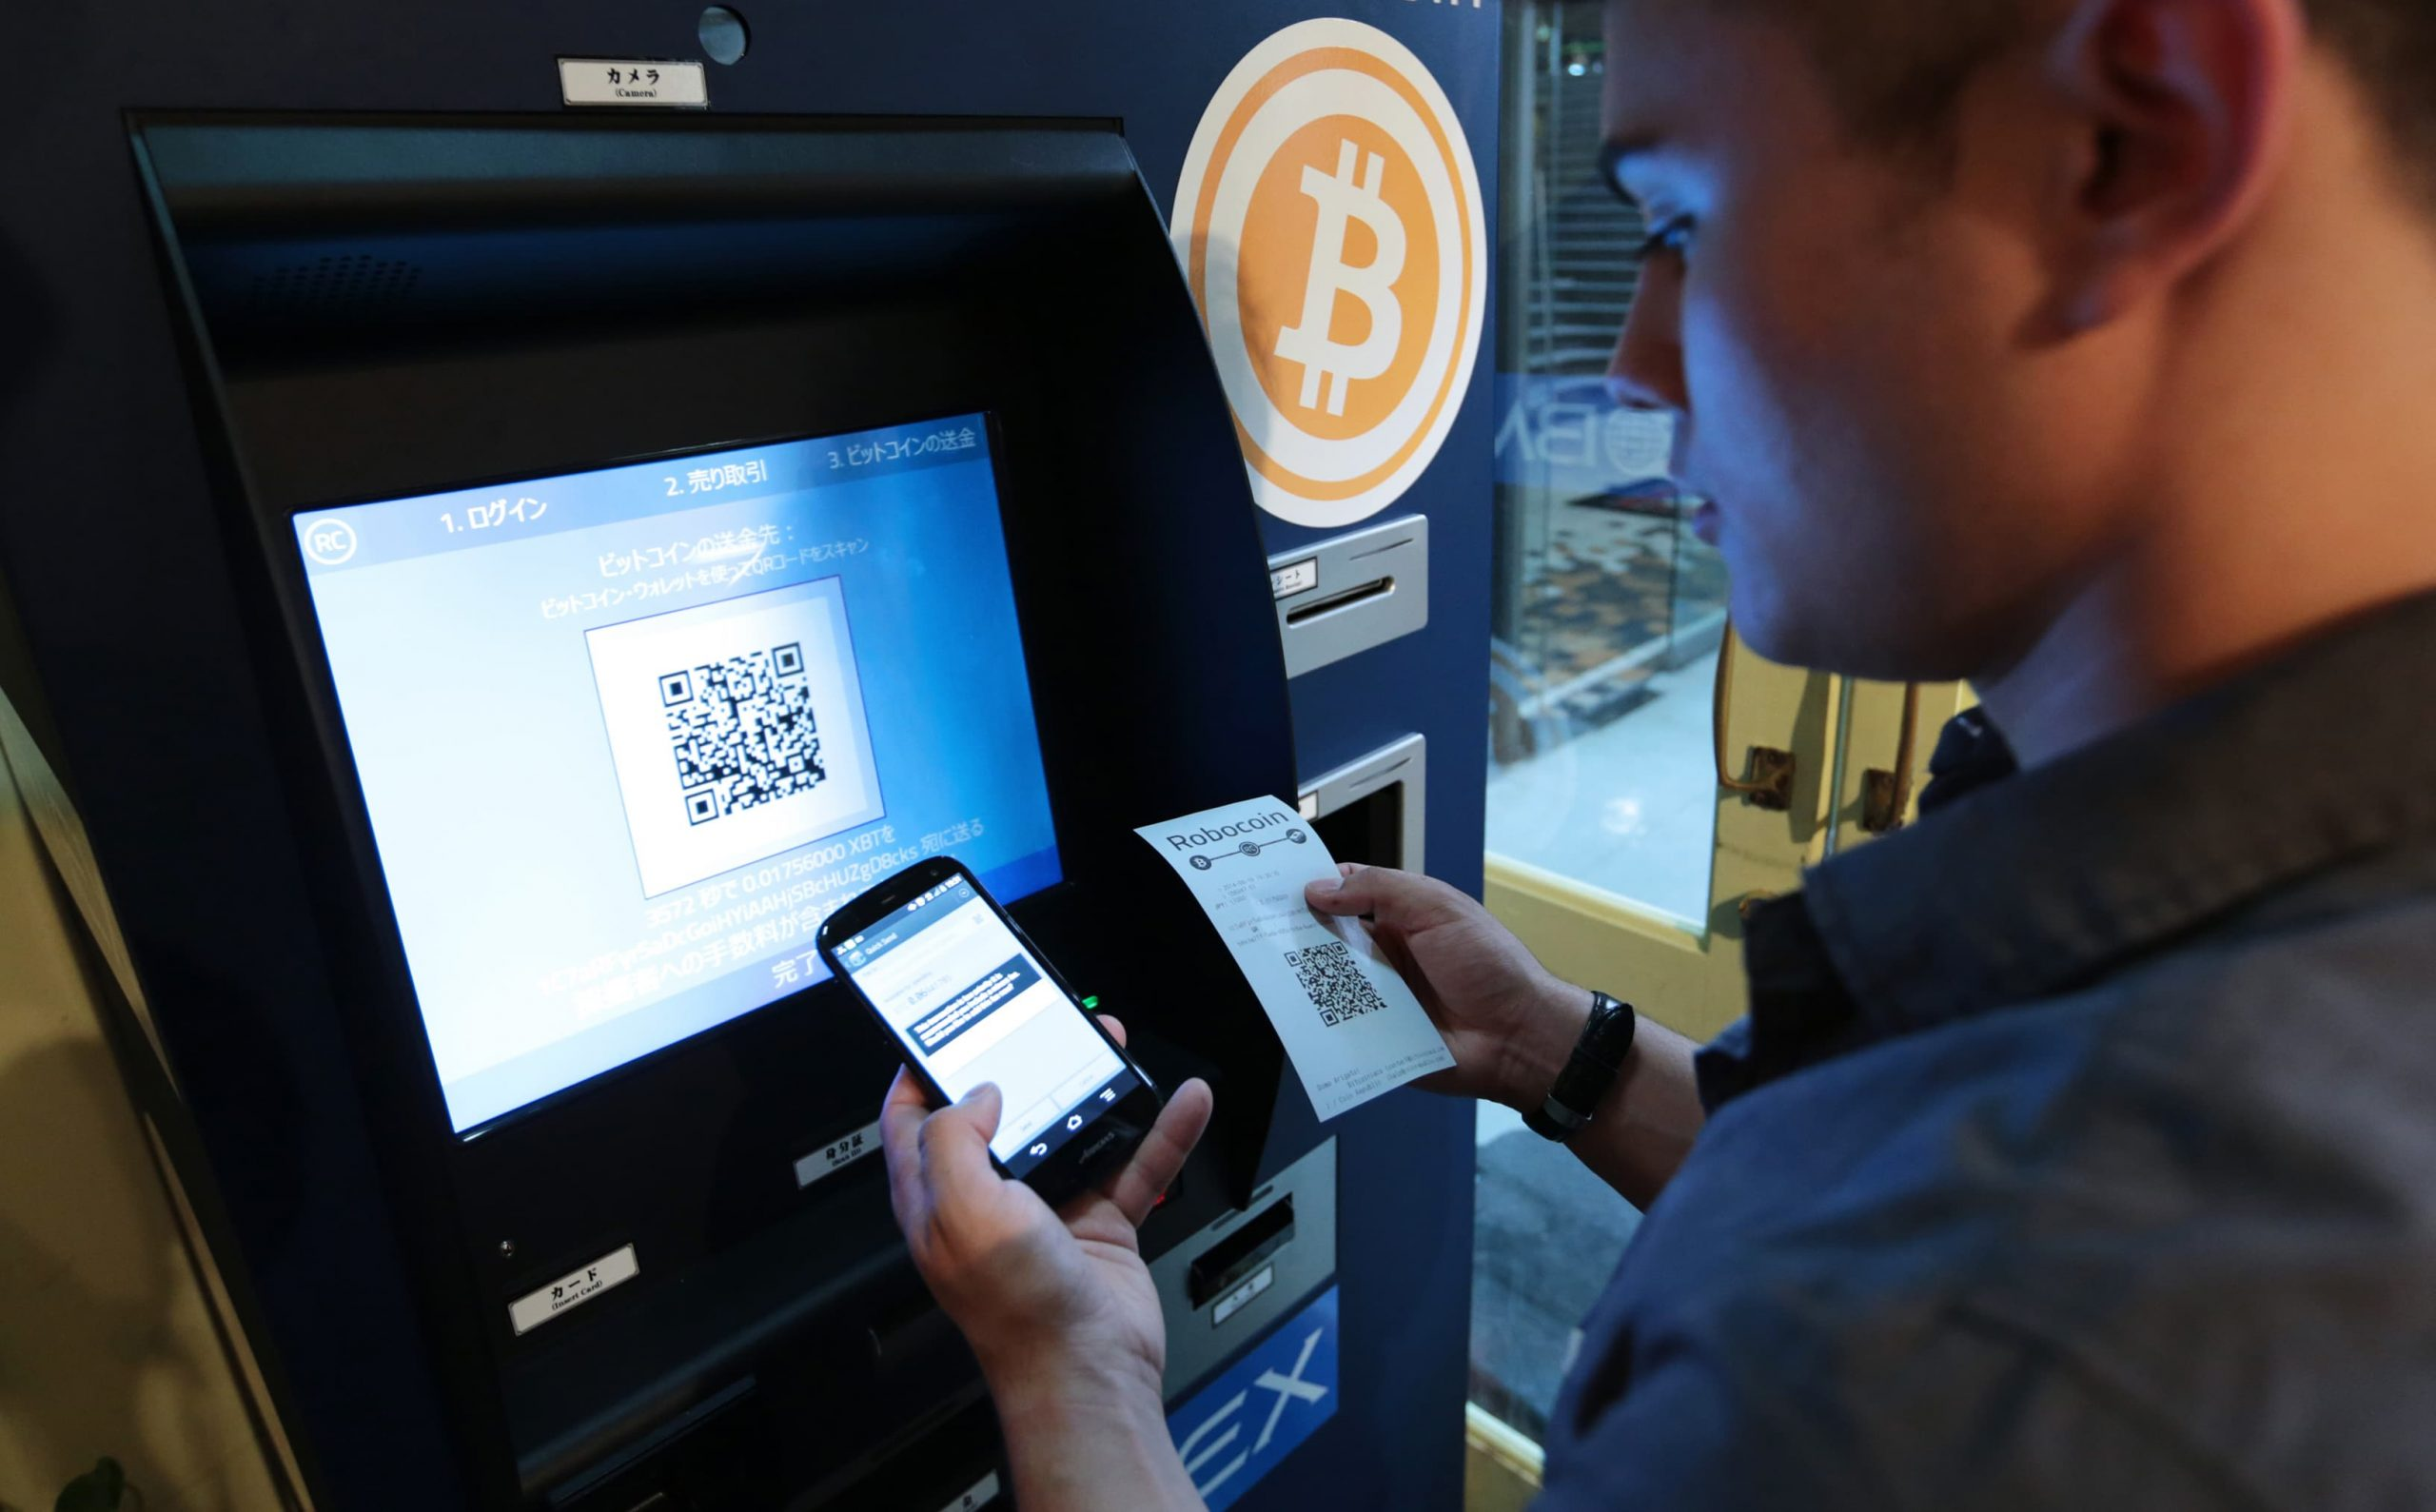 Millennial millionaires have large share of wealth in crypto: CNBC survey